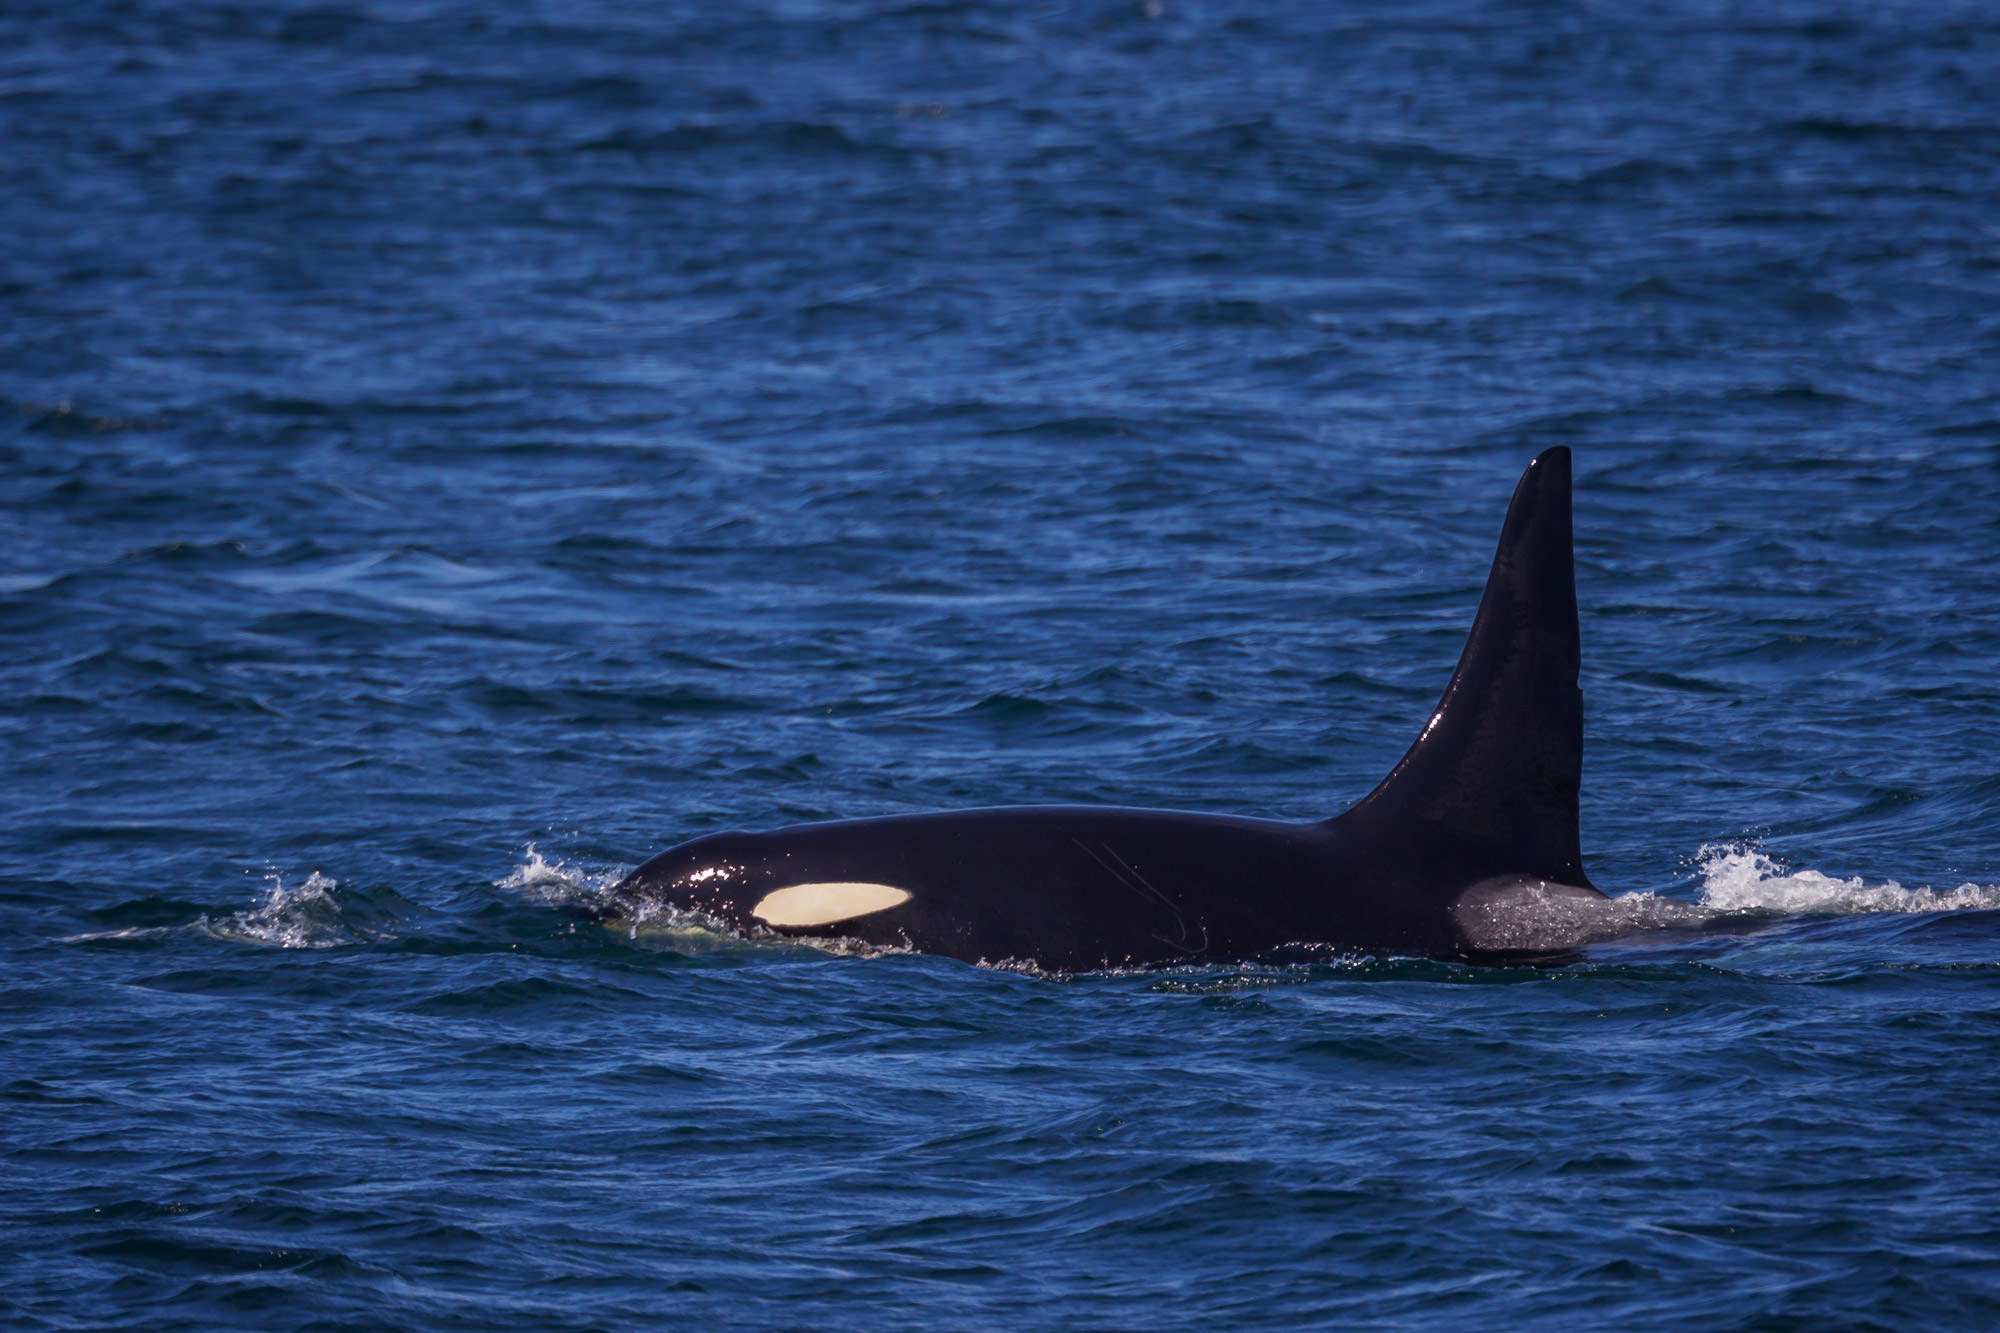 Whale, Orca Whale, Washington, San Juan Islands, limited edition, photograph, fine art, wildlife, photo